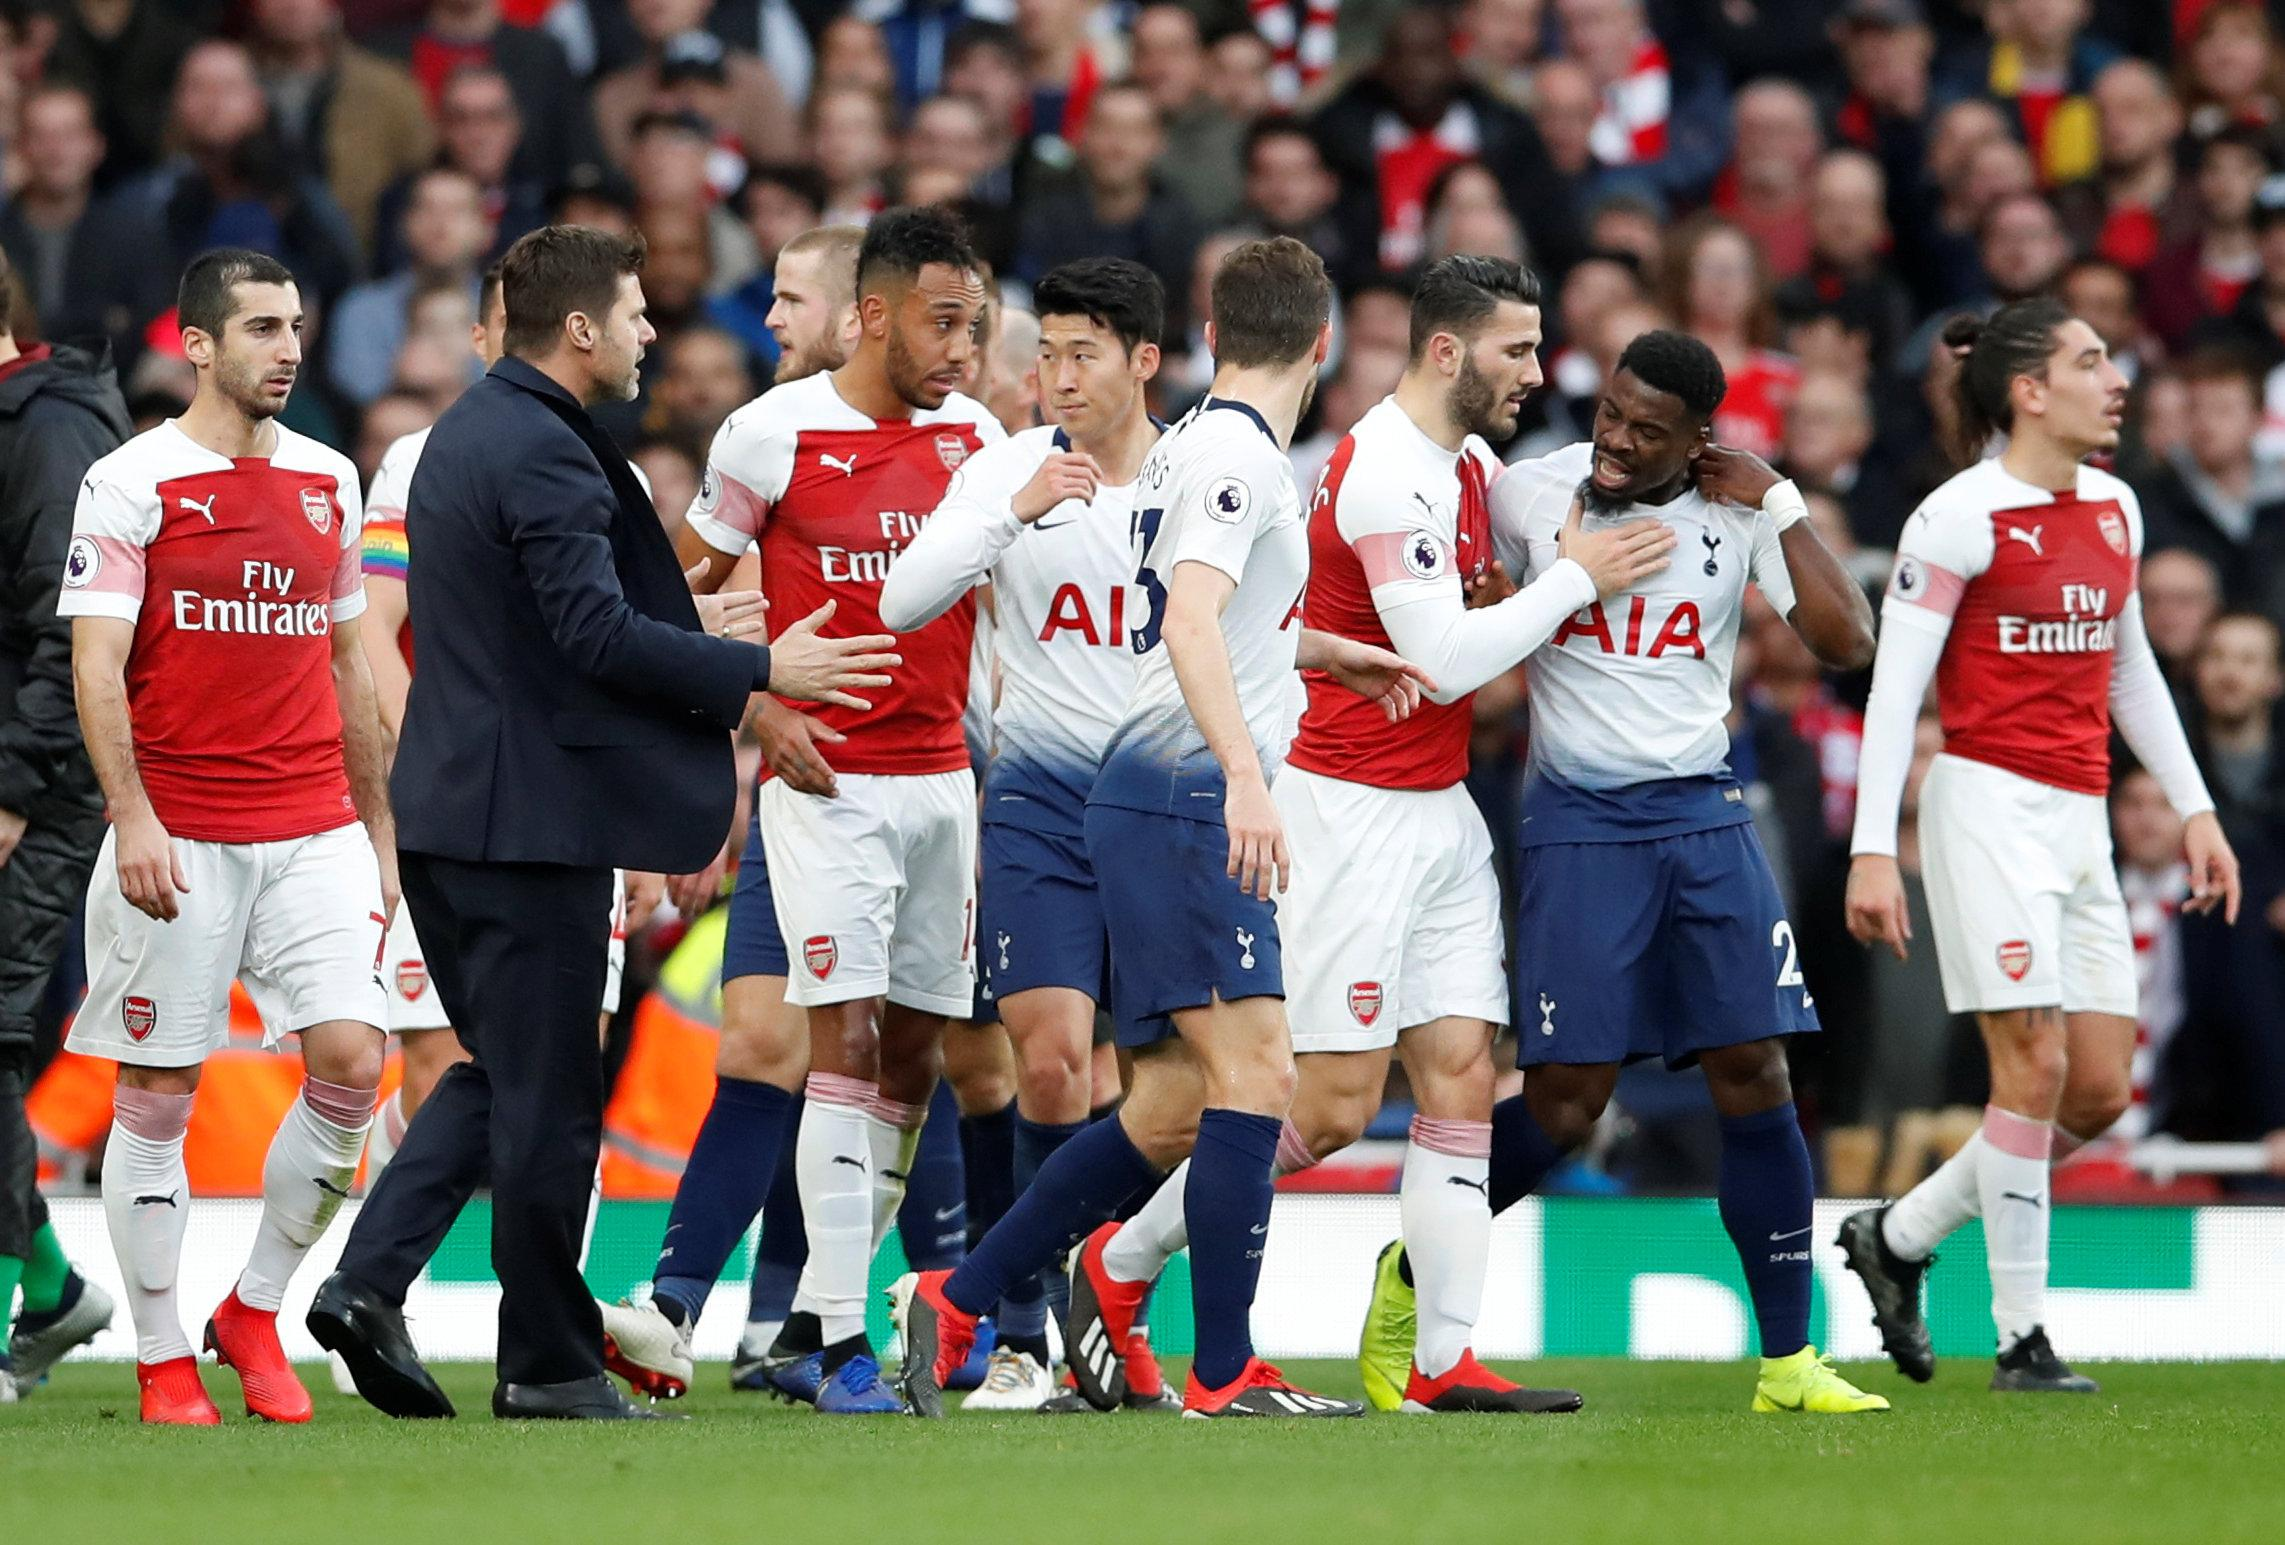 Spurs manager Pochettino tried to settle things down